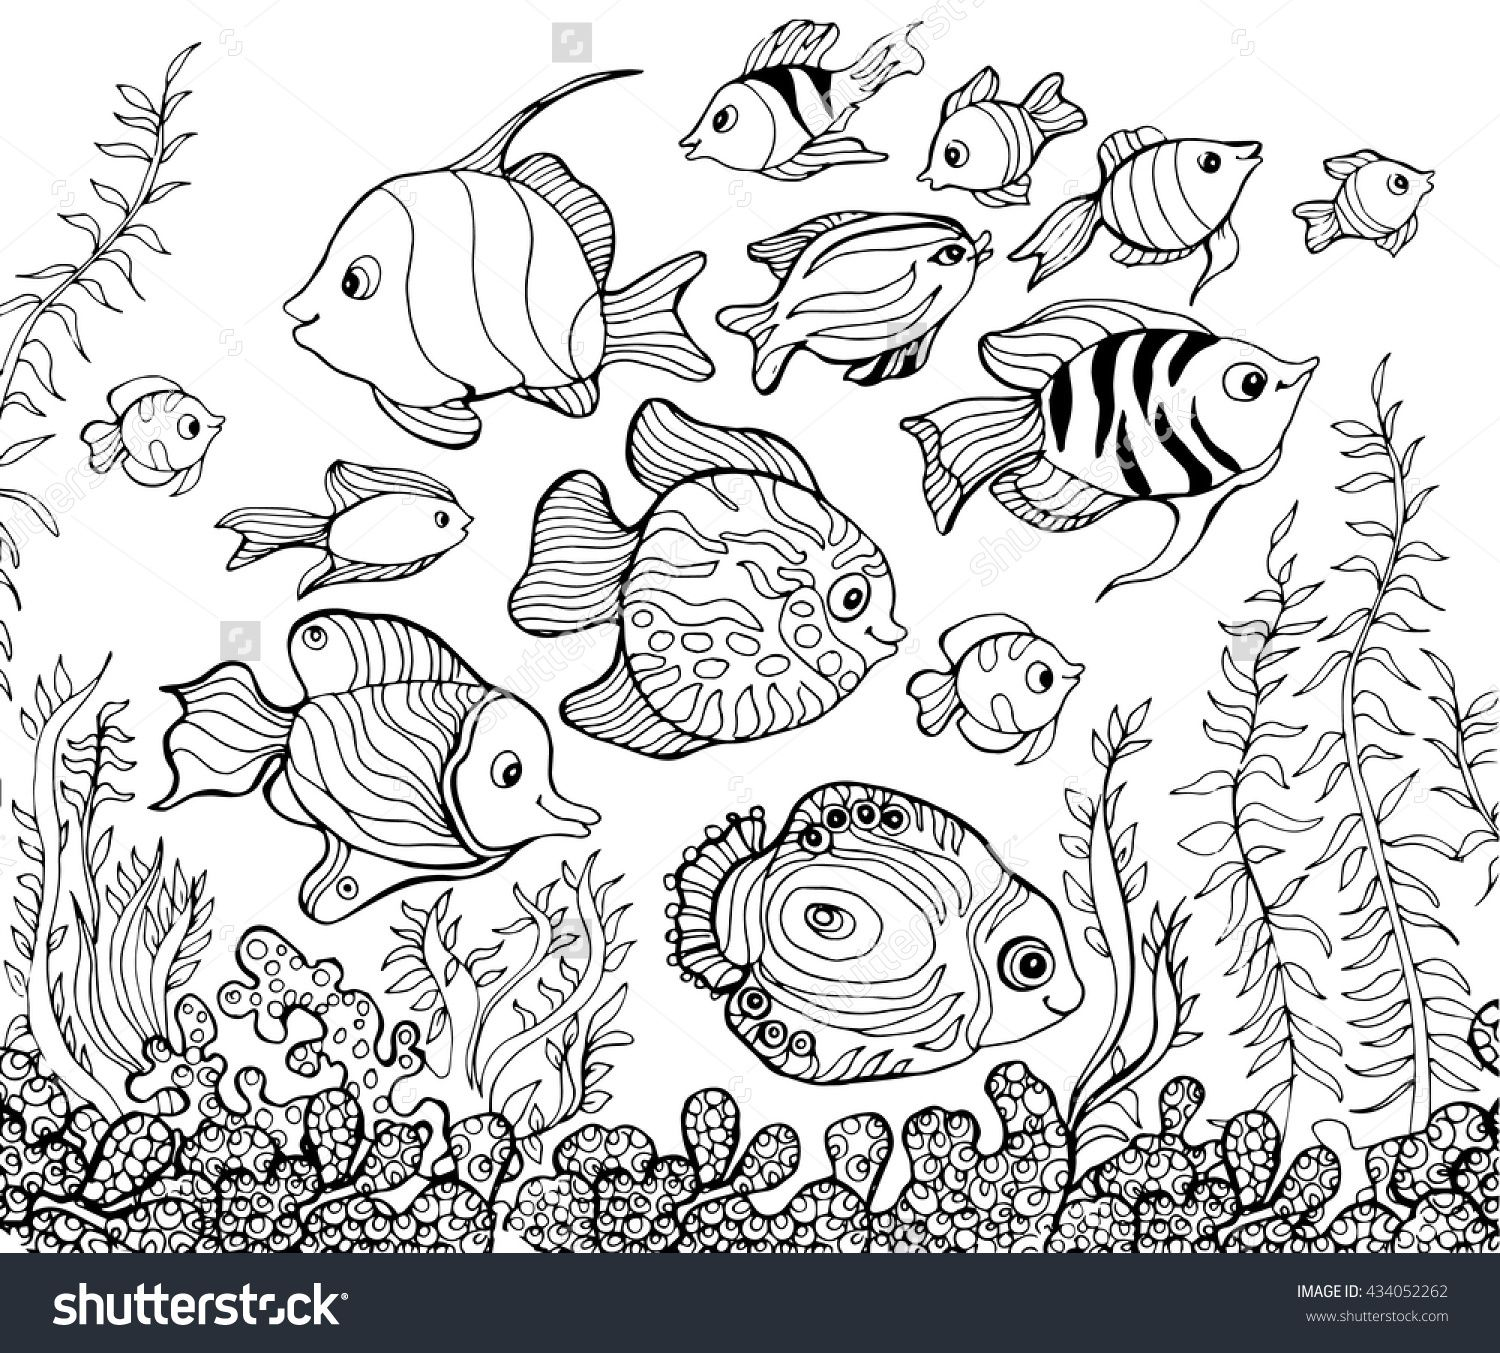 Outline Drawing Underwater Fish Coloring Pages For Kids